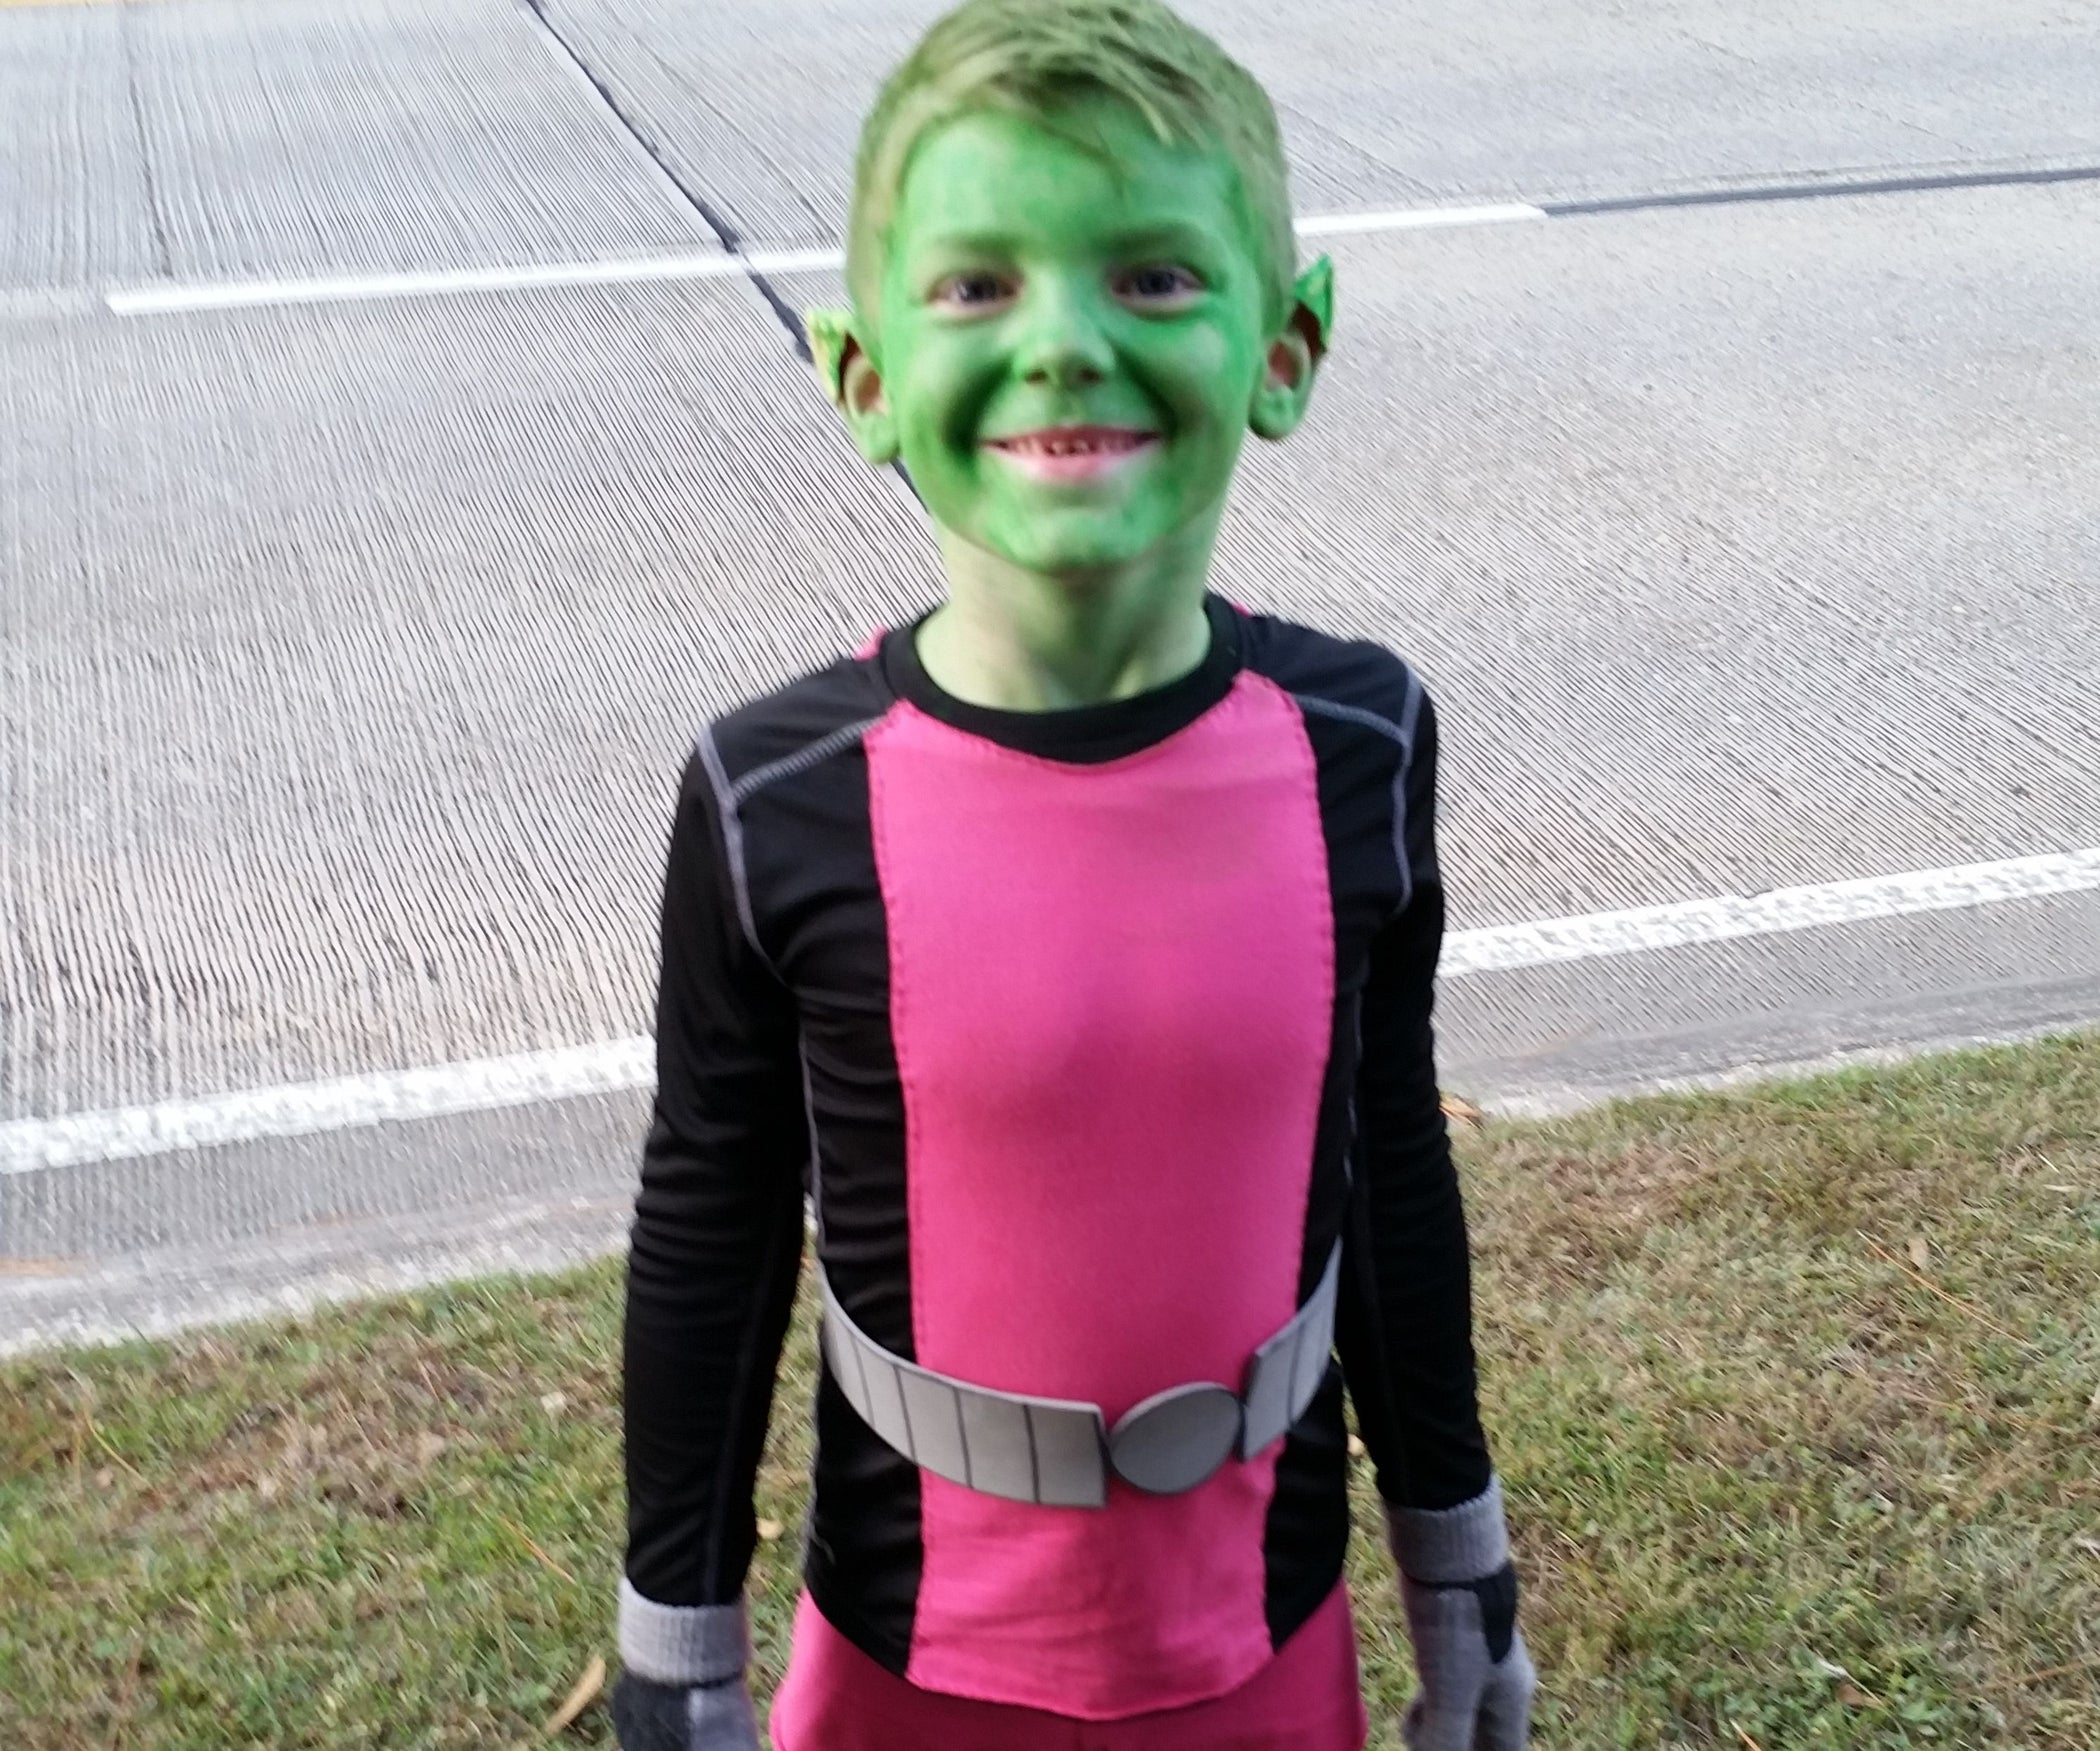 beast boy costume: 8 steps (with pictures)